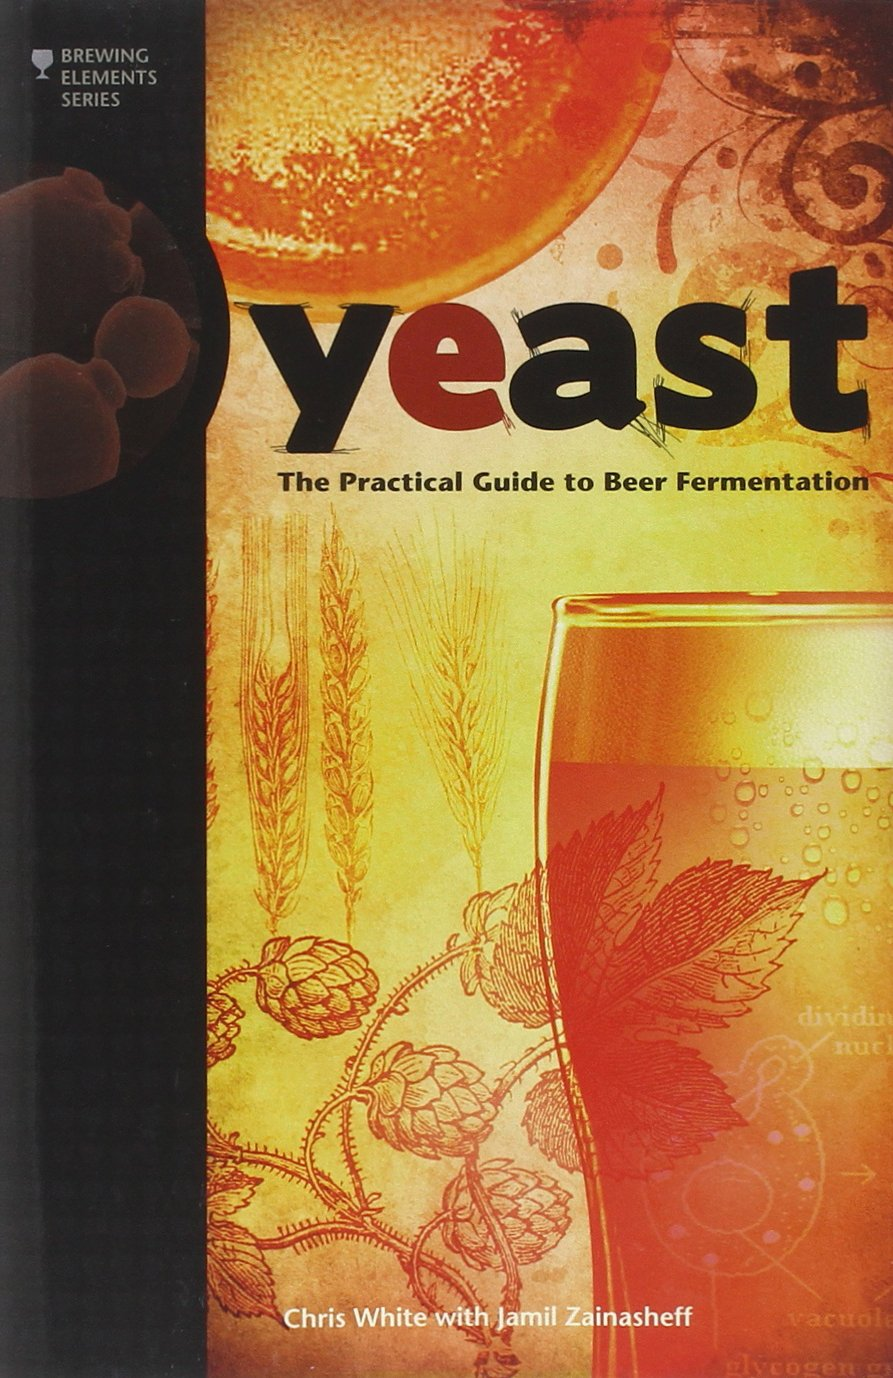 Yeast: The Practical Guide to Beer Fermentation (Anglais) Broché – 16 octobre 2010 Chris White Jamil Zainasheff Brewers Publications 0937381969